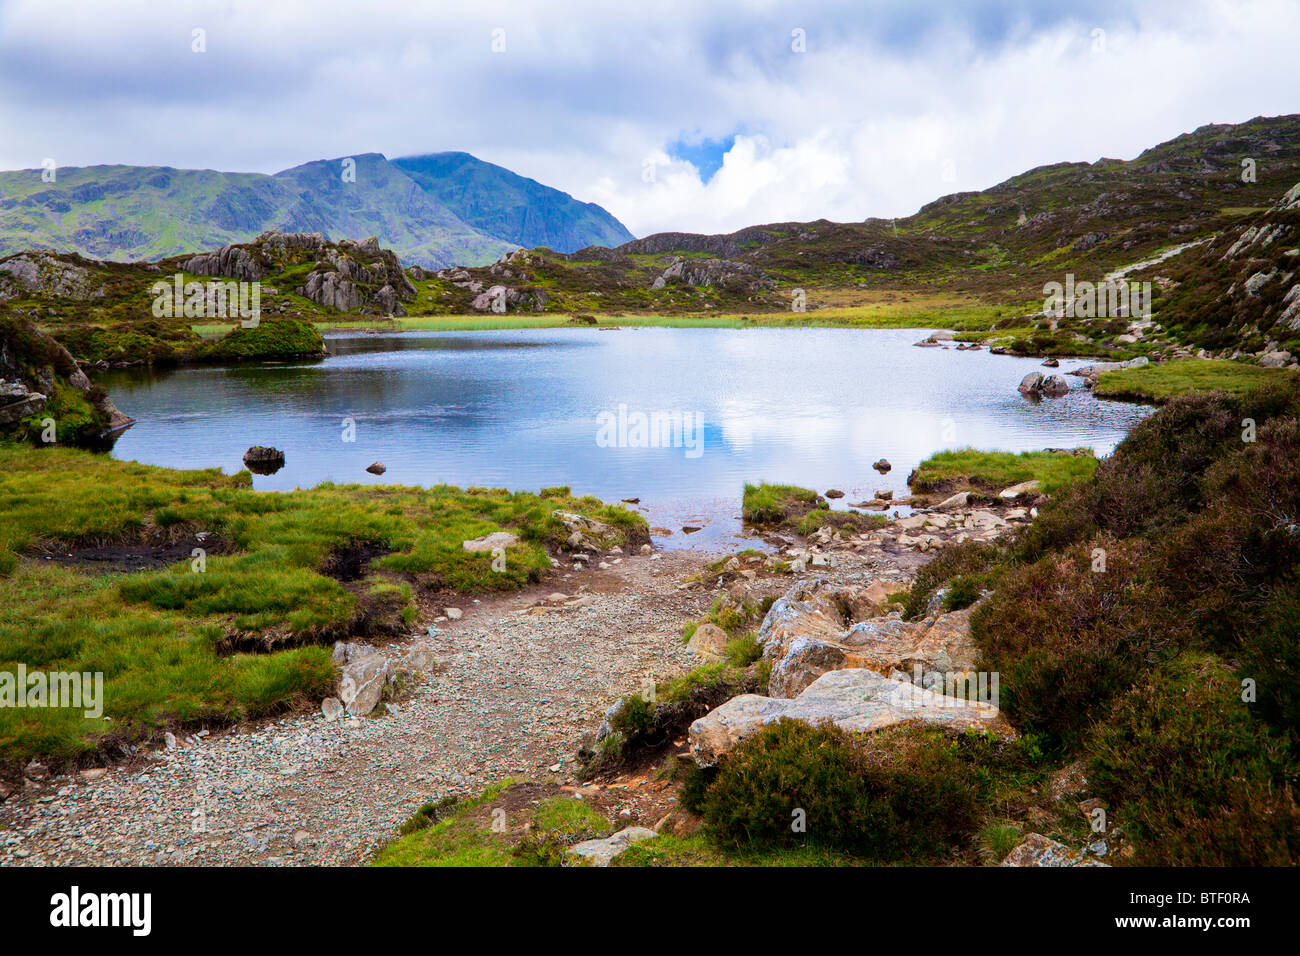 Tarn innommé sur le sommet du foin dans le Lake District, Cumbria, England, UK Photo Stock